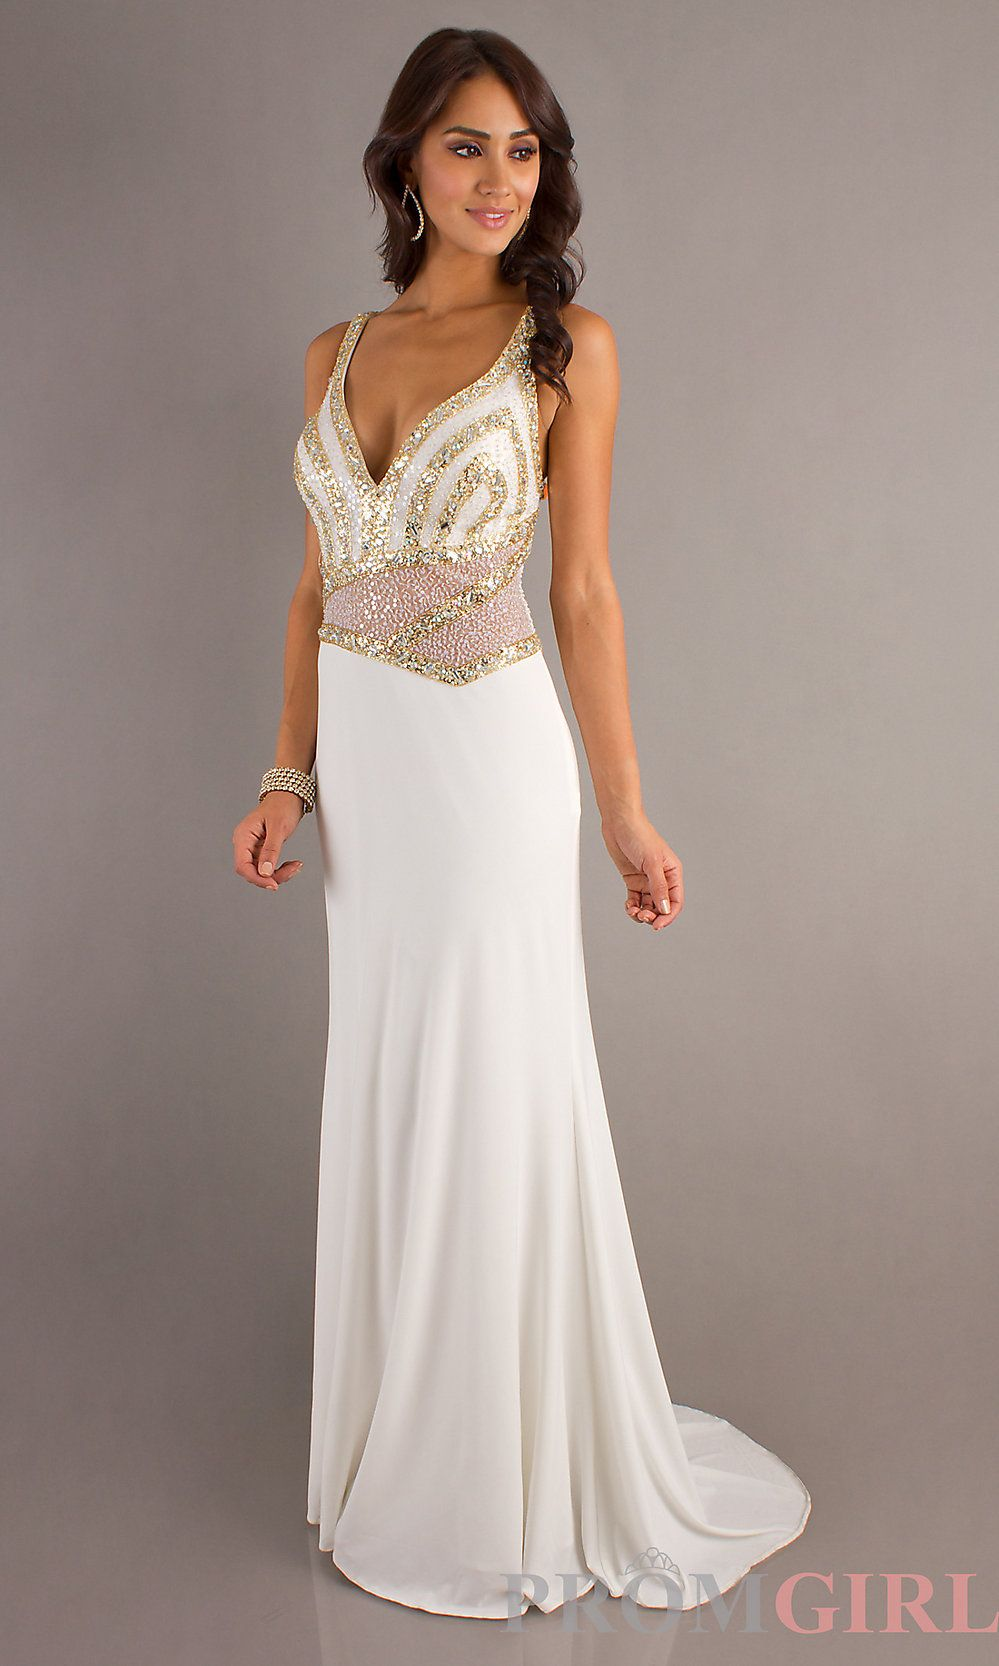 IVORY EVENING GOWN BY DAVE AND JOHNNY   Evening Gowns   Pinterest ...